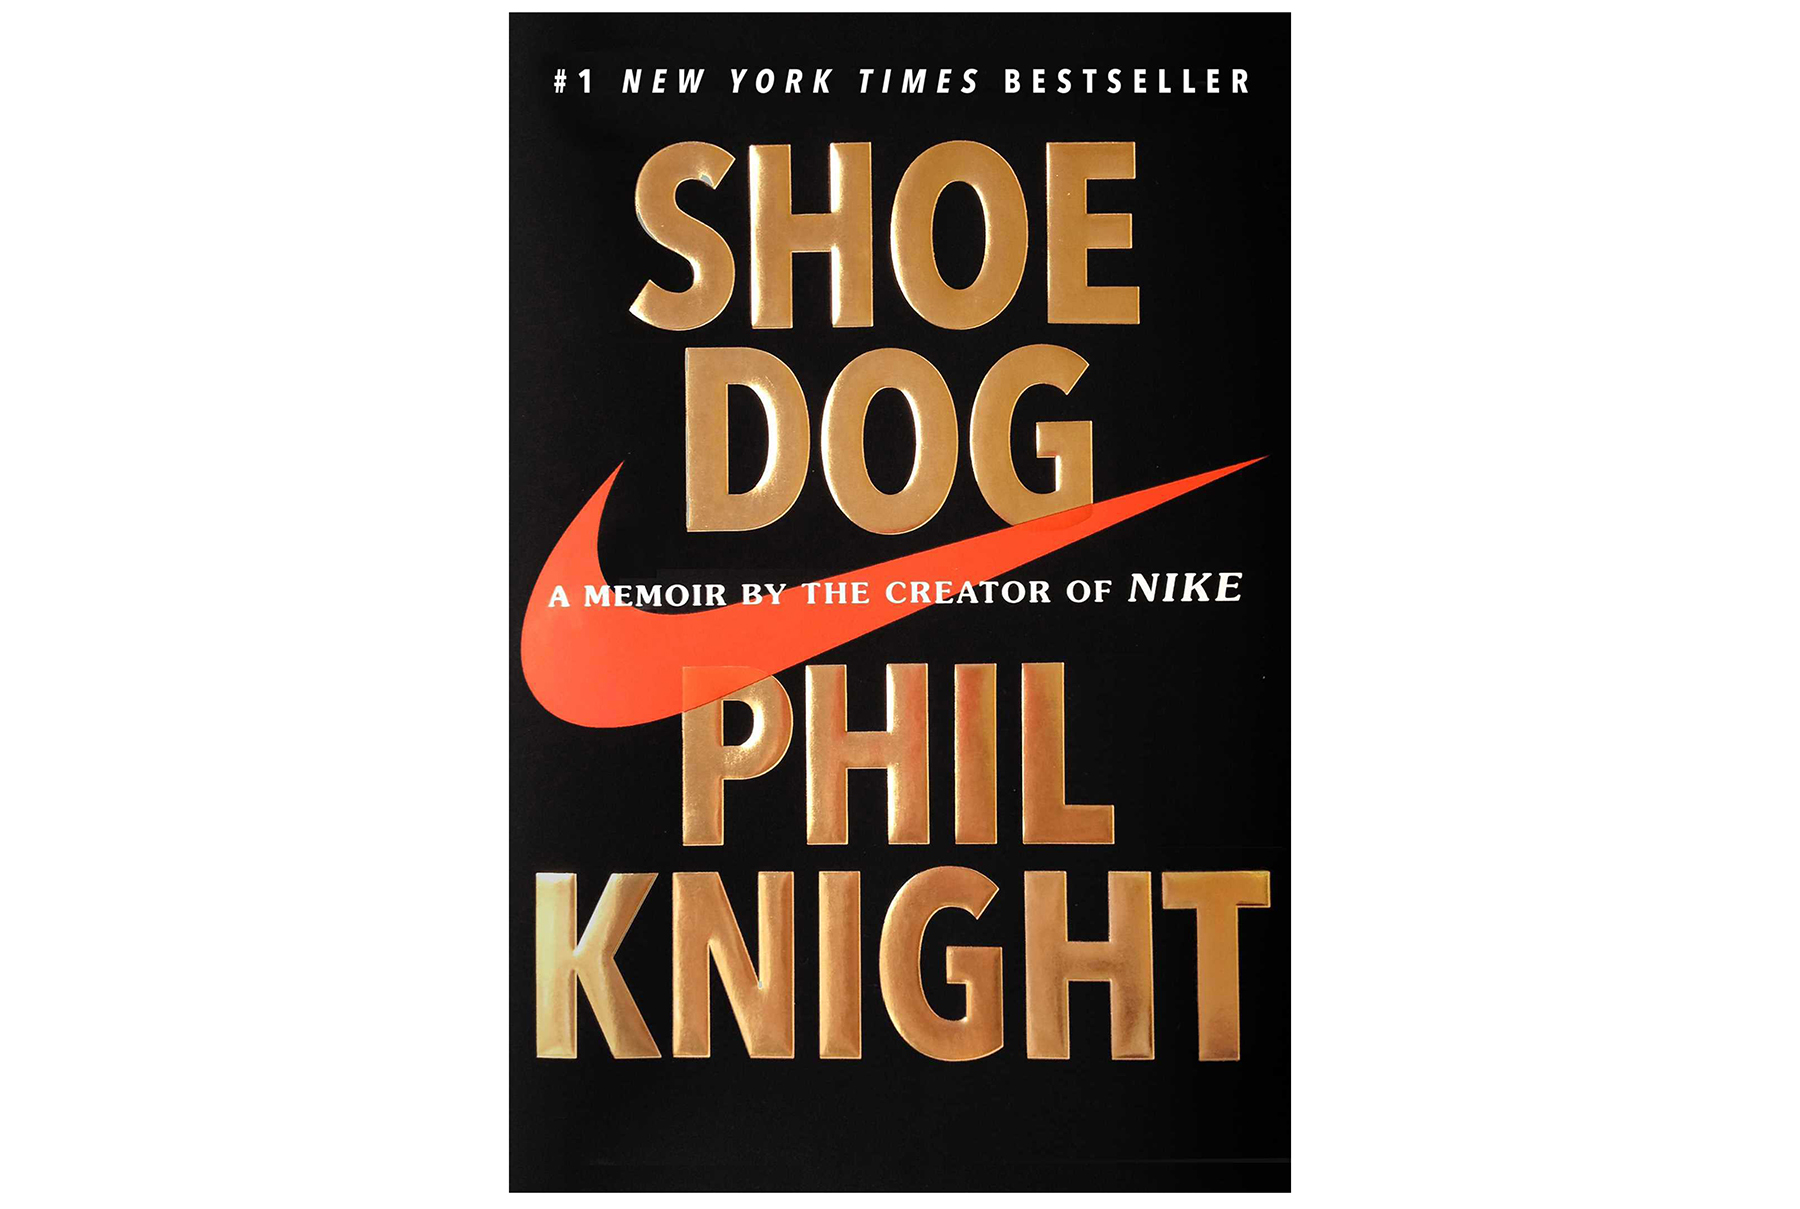 Shoe Dog, by Phil Knight